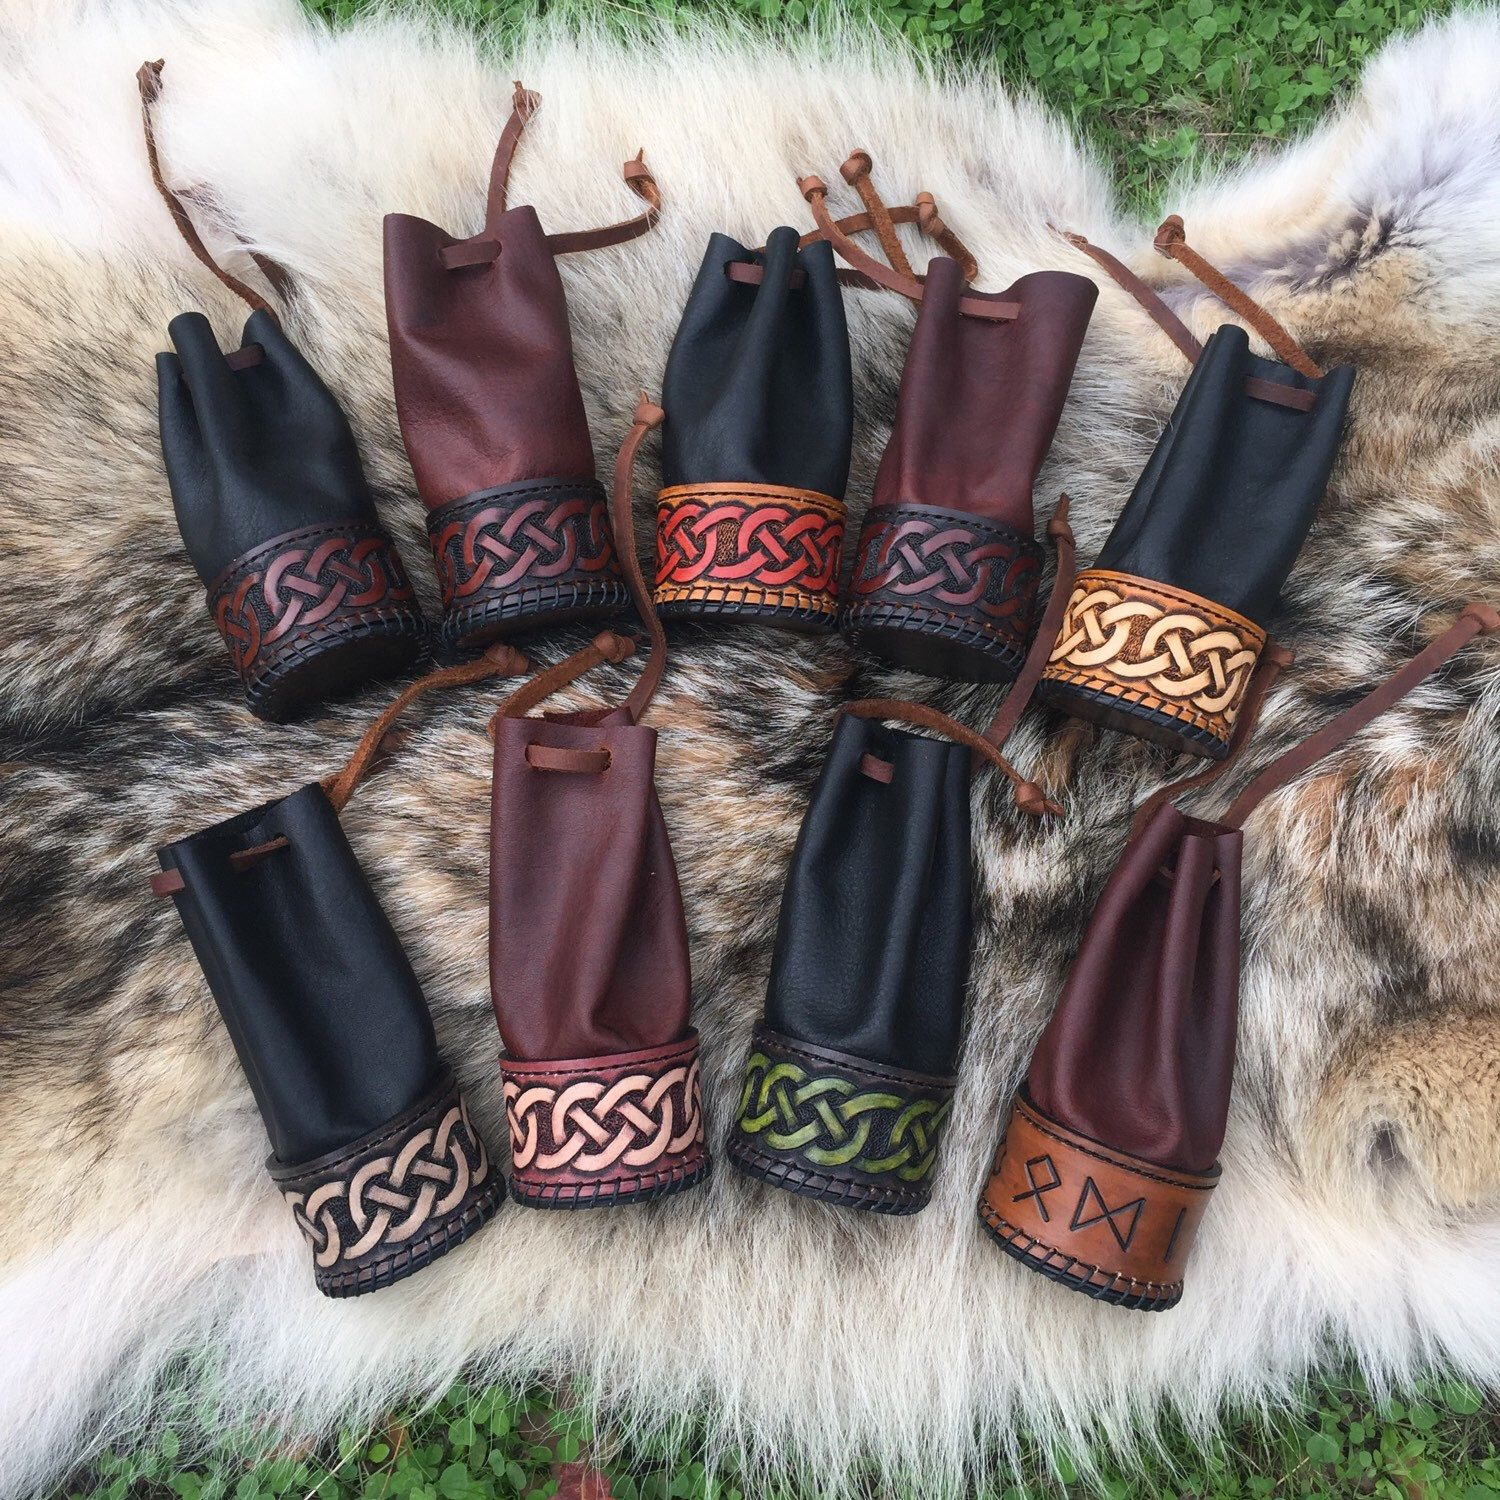 These amazing new rune pouches are by far the most epic rune pouches you will find, meticulously hand crafted using 4 unique high quality leathers and multiple leather techniques. Limited quantity of these, 55$ each get them while you can!